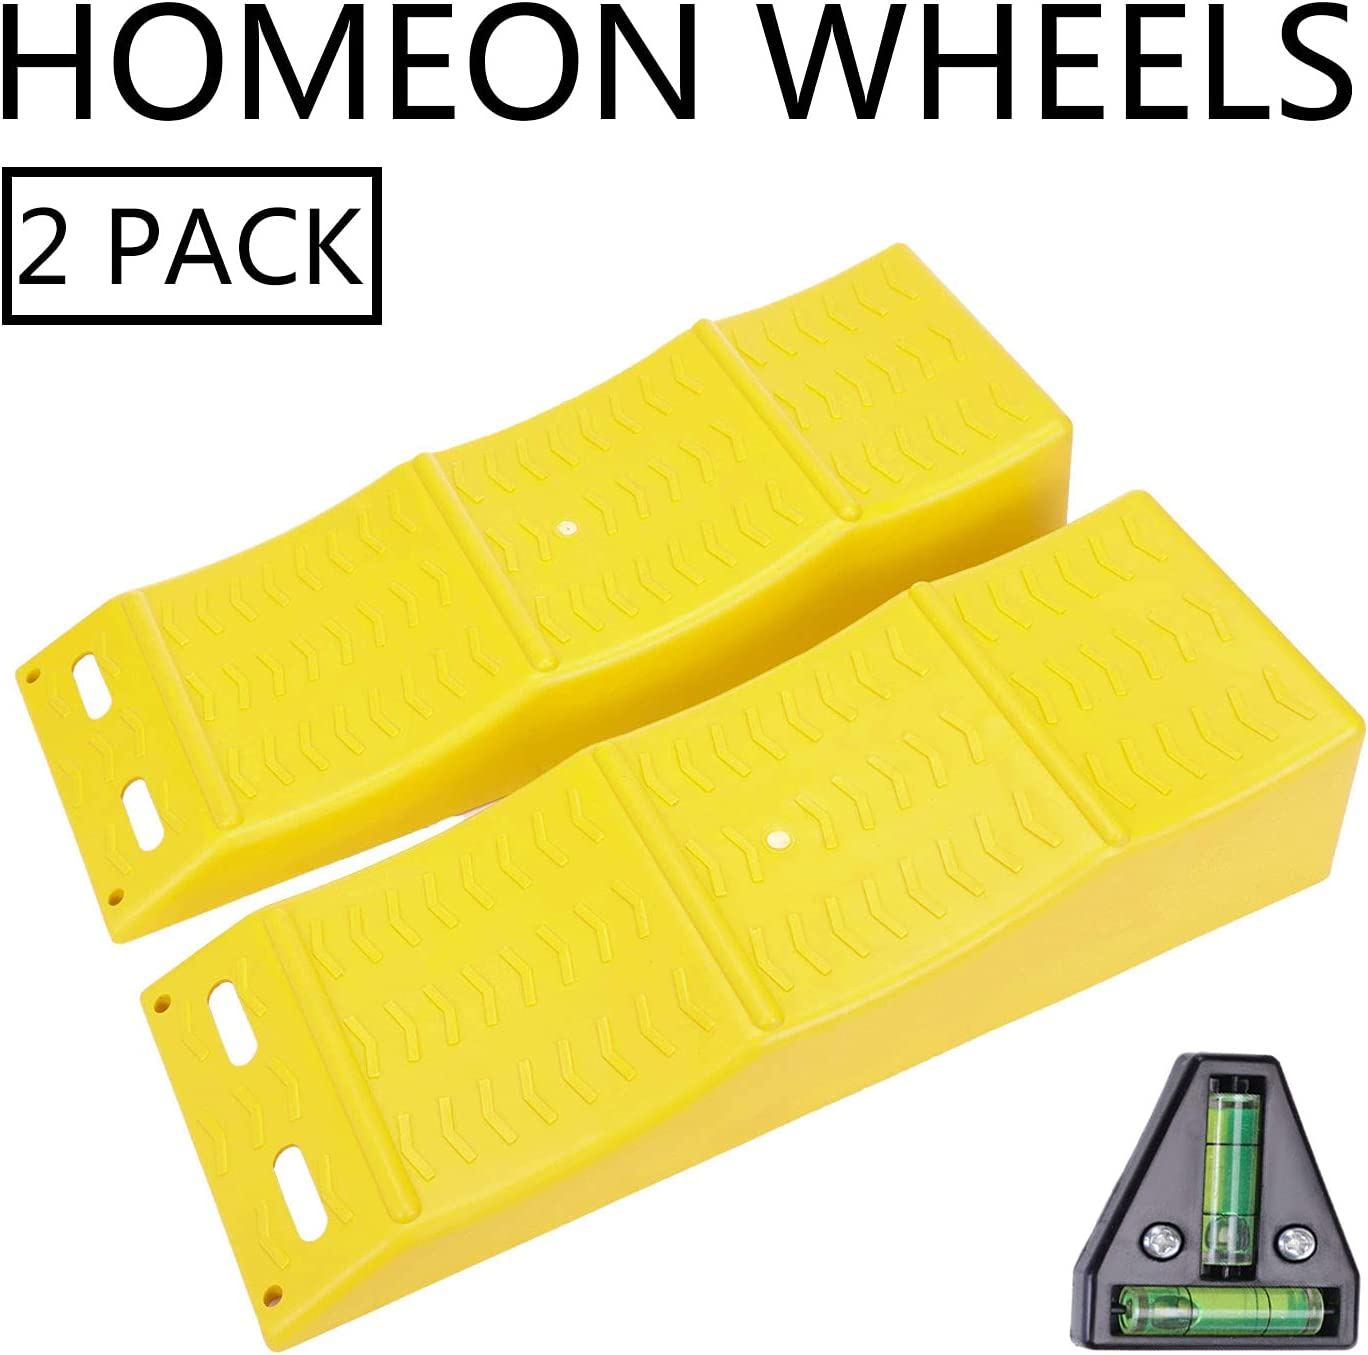 Homeon Wheels RV Leveling Blocks, Heavy Duty 3 Curved Camper Leveler Ramps 2 Pack Tire Chocks for Motorhome Caravan Truck SUV Each Wheel 5,000 lb Adds Up to 3.94in Total 6 in Height RV T Level